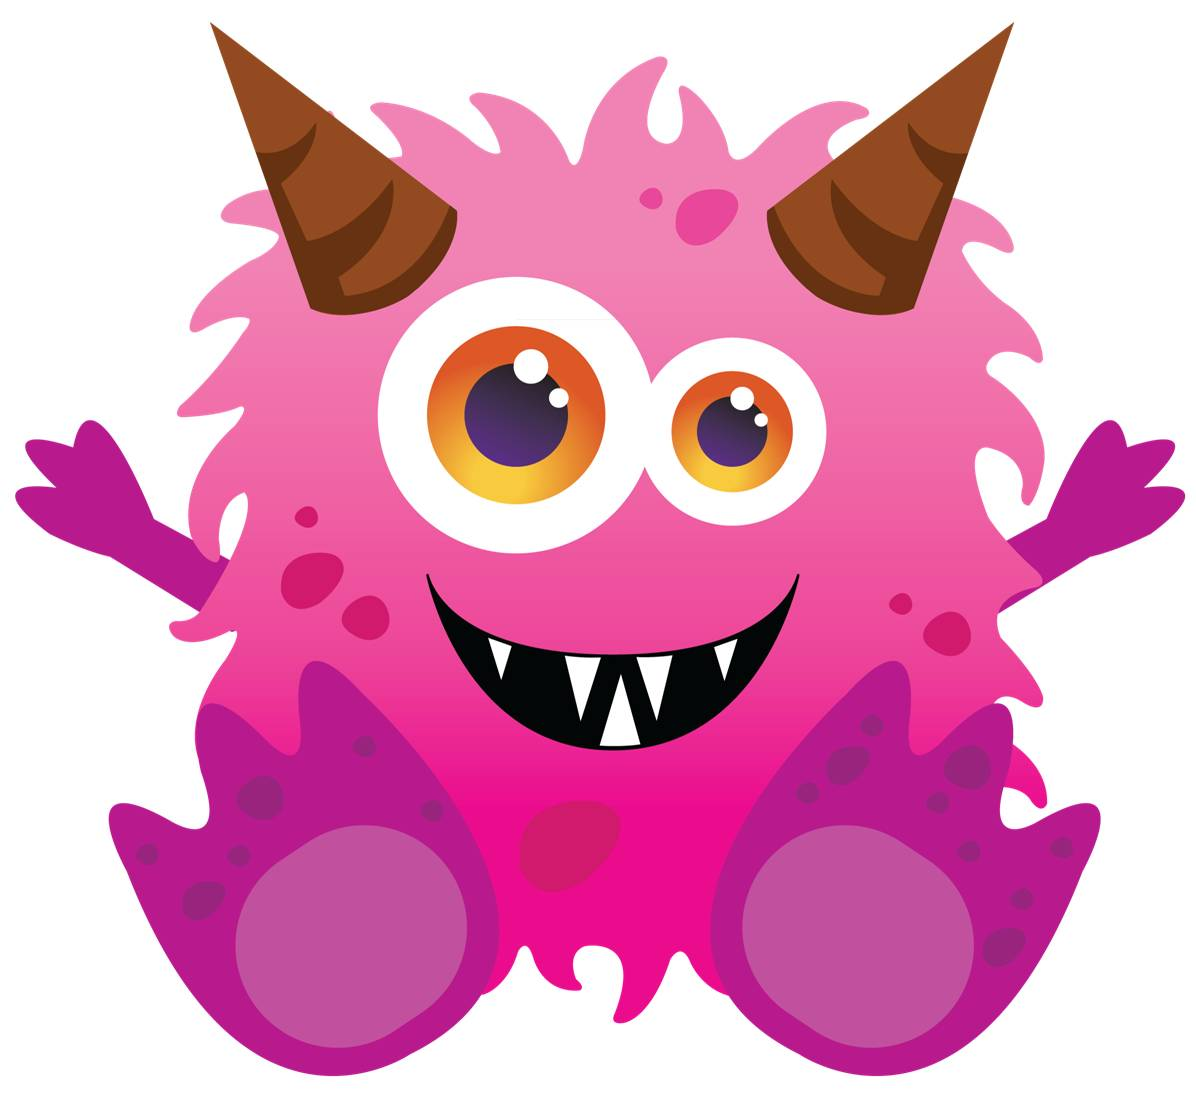 monster monsters cute fluffy clipart pink baby friendly inc clip four delaware coupon kid stuff giveaways days orchid welcomes academy